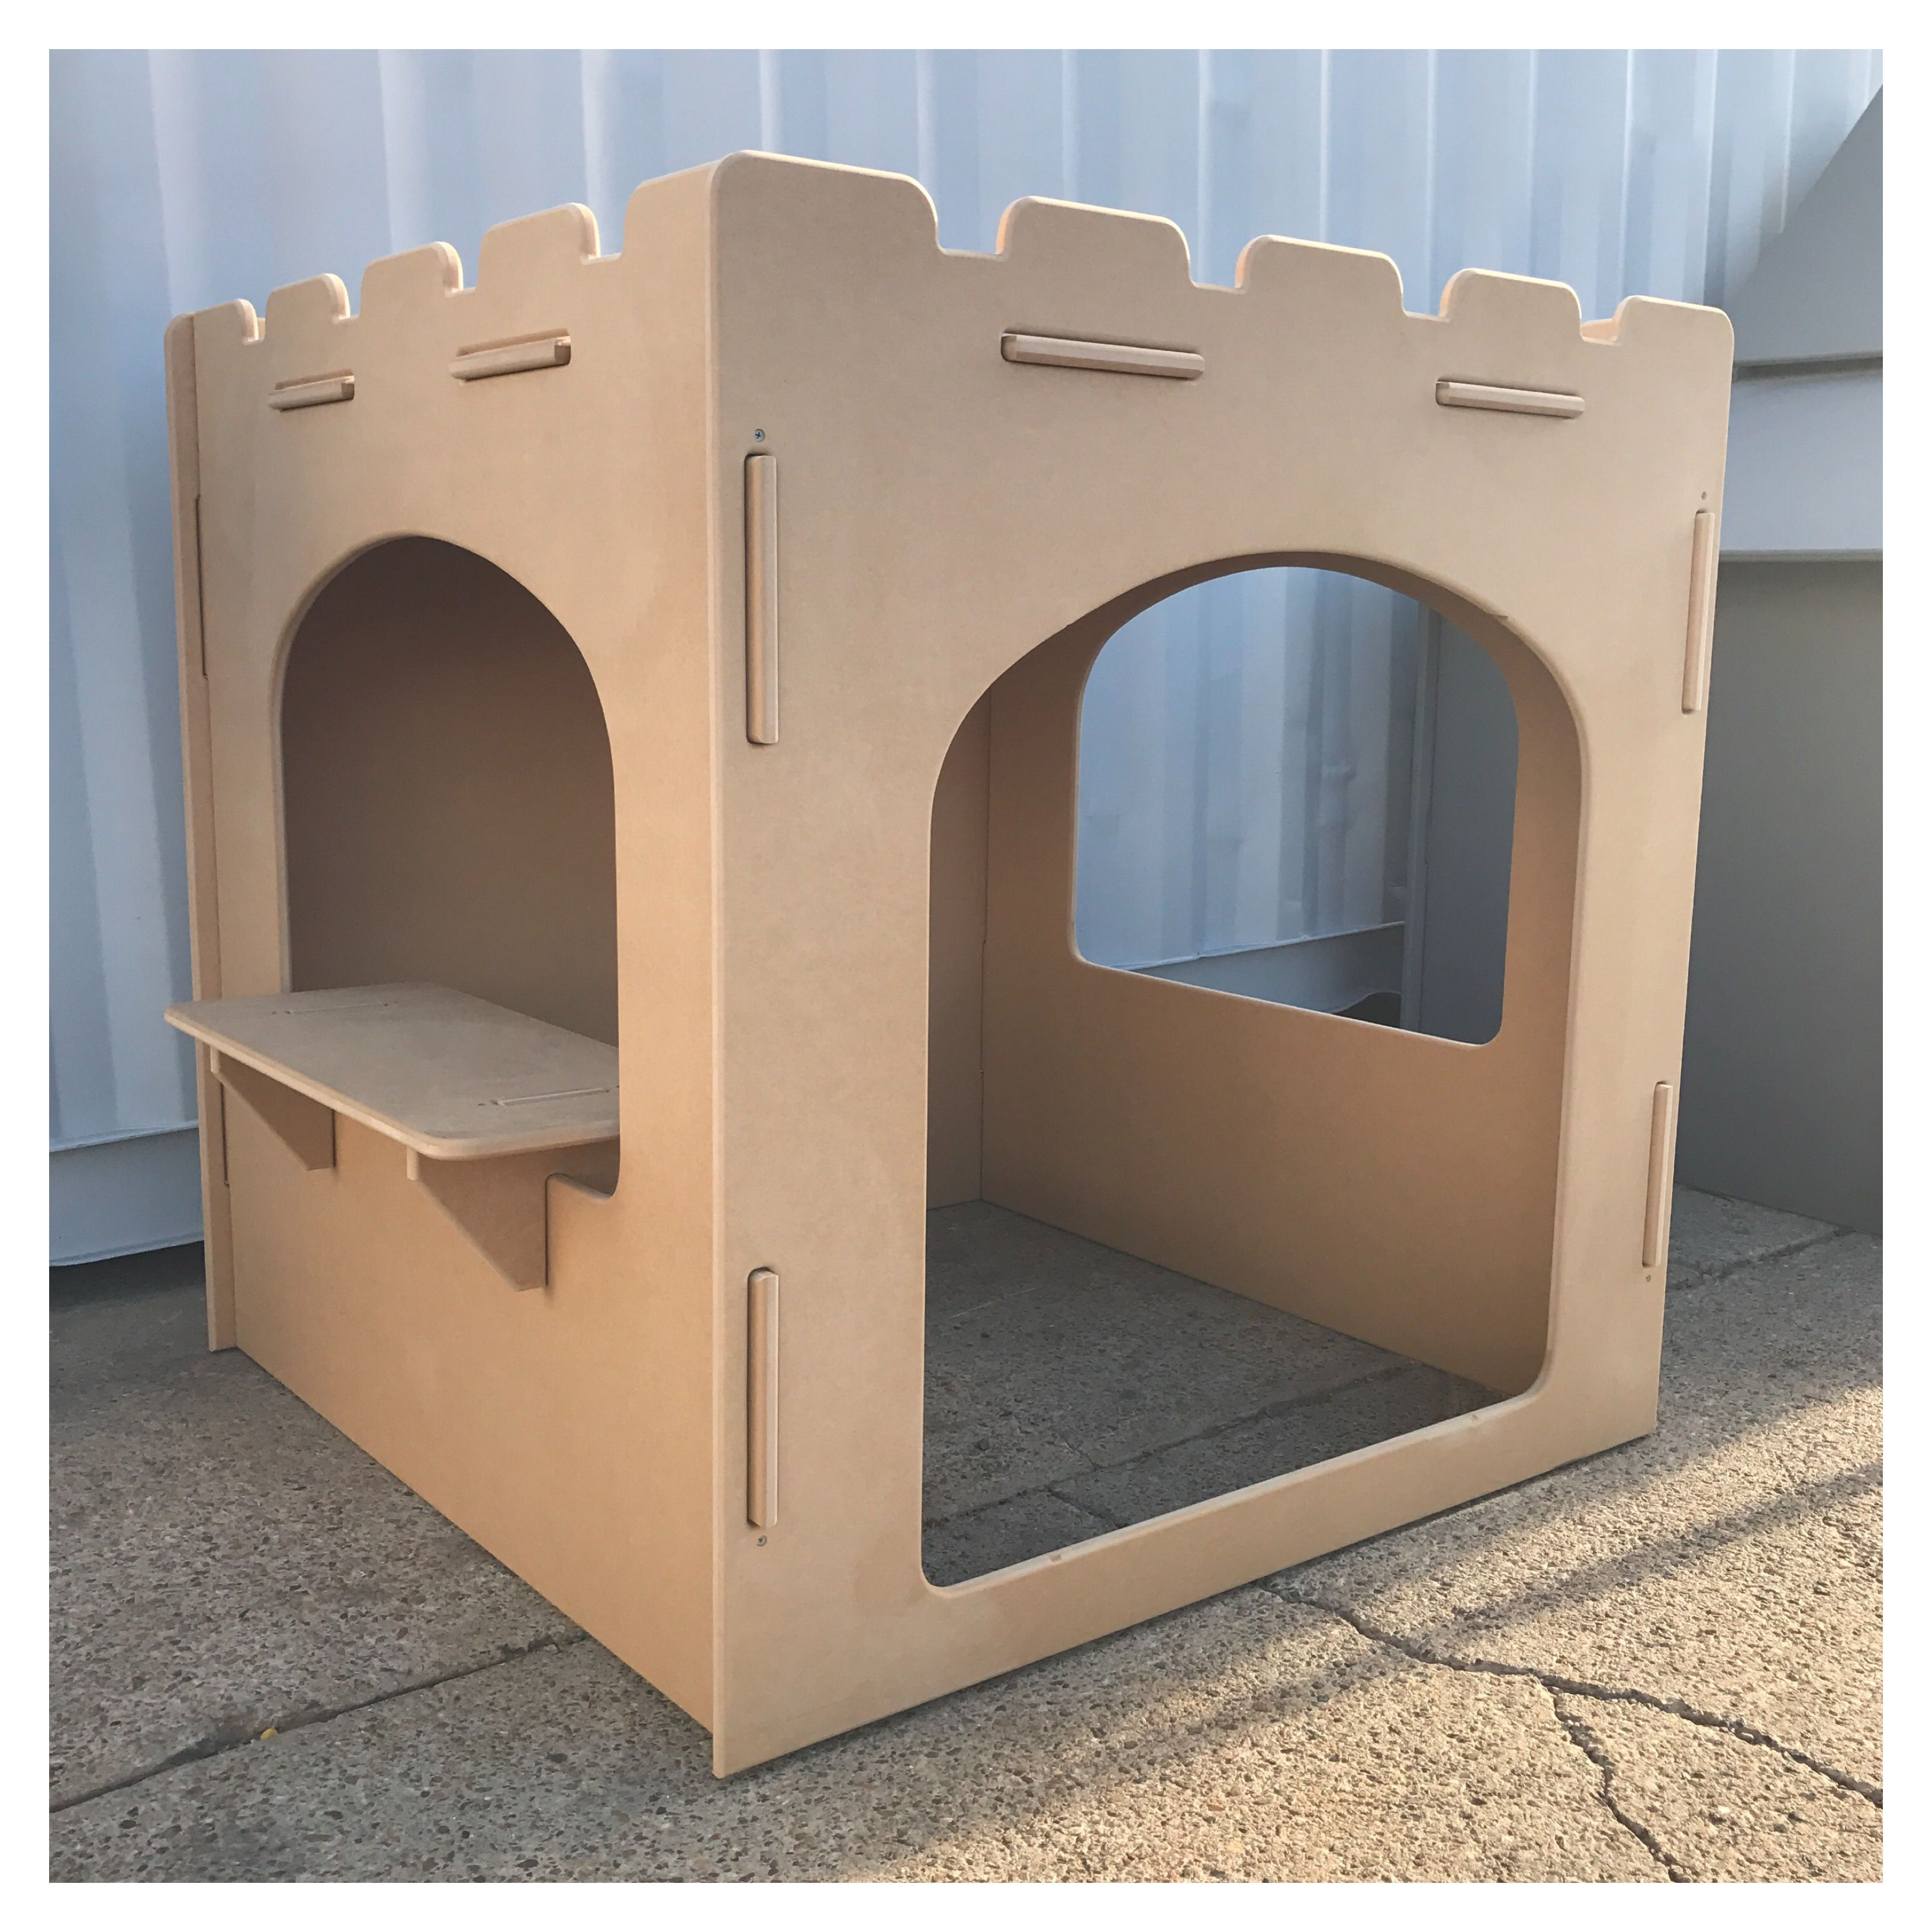 Castle Cubby House For Indoors Indoor Play Room Wooden Cubby House Castle Cubby Cardboard House Wooden Cubby Cubby Houses